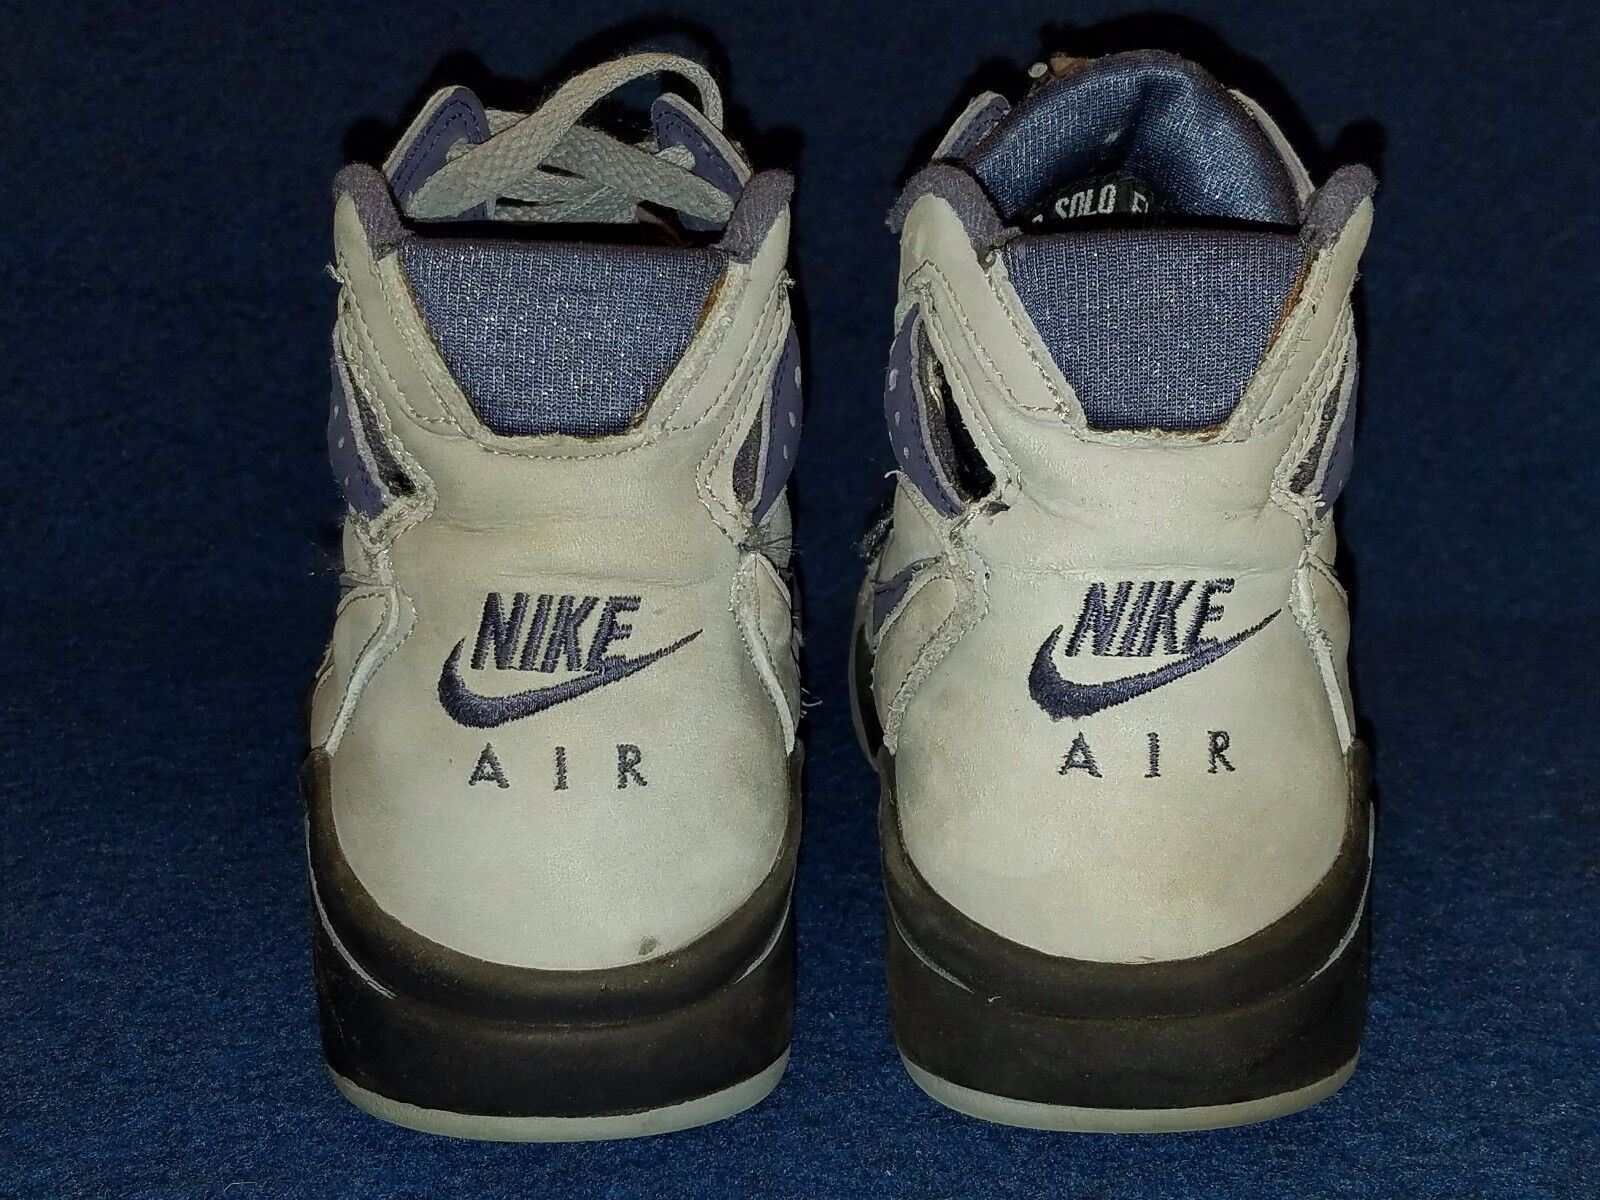 Vintage Nike Collector Air Flight Solo Shoes, 7 1/2, great shape, please read